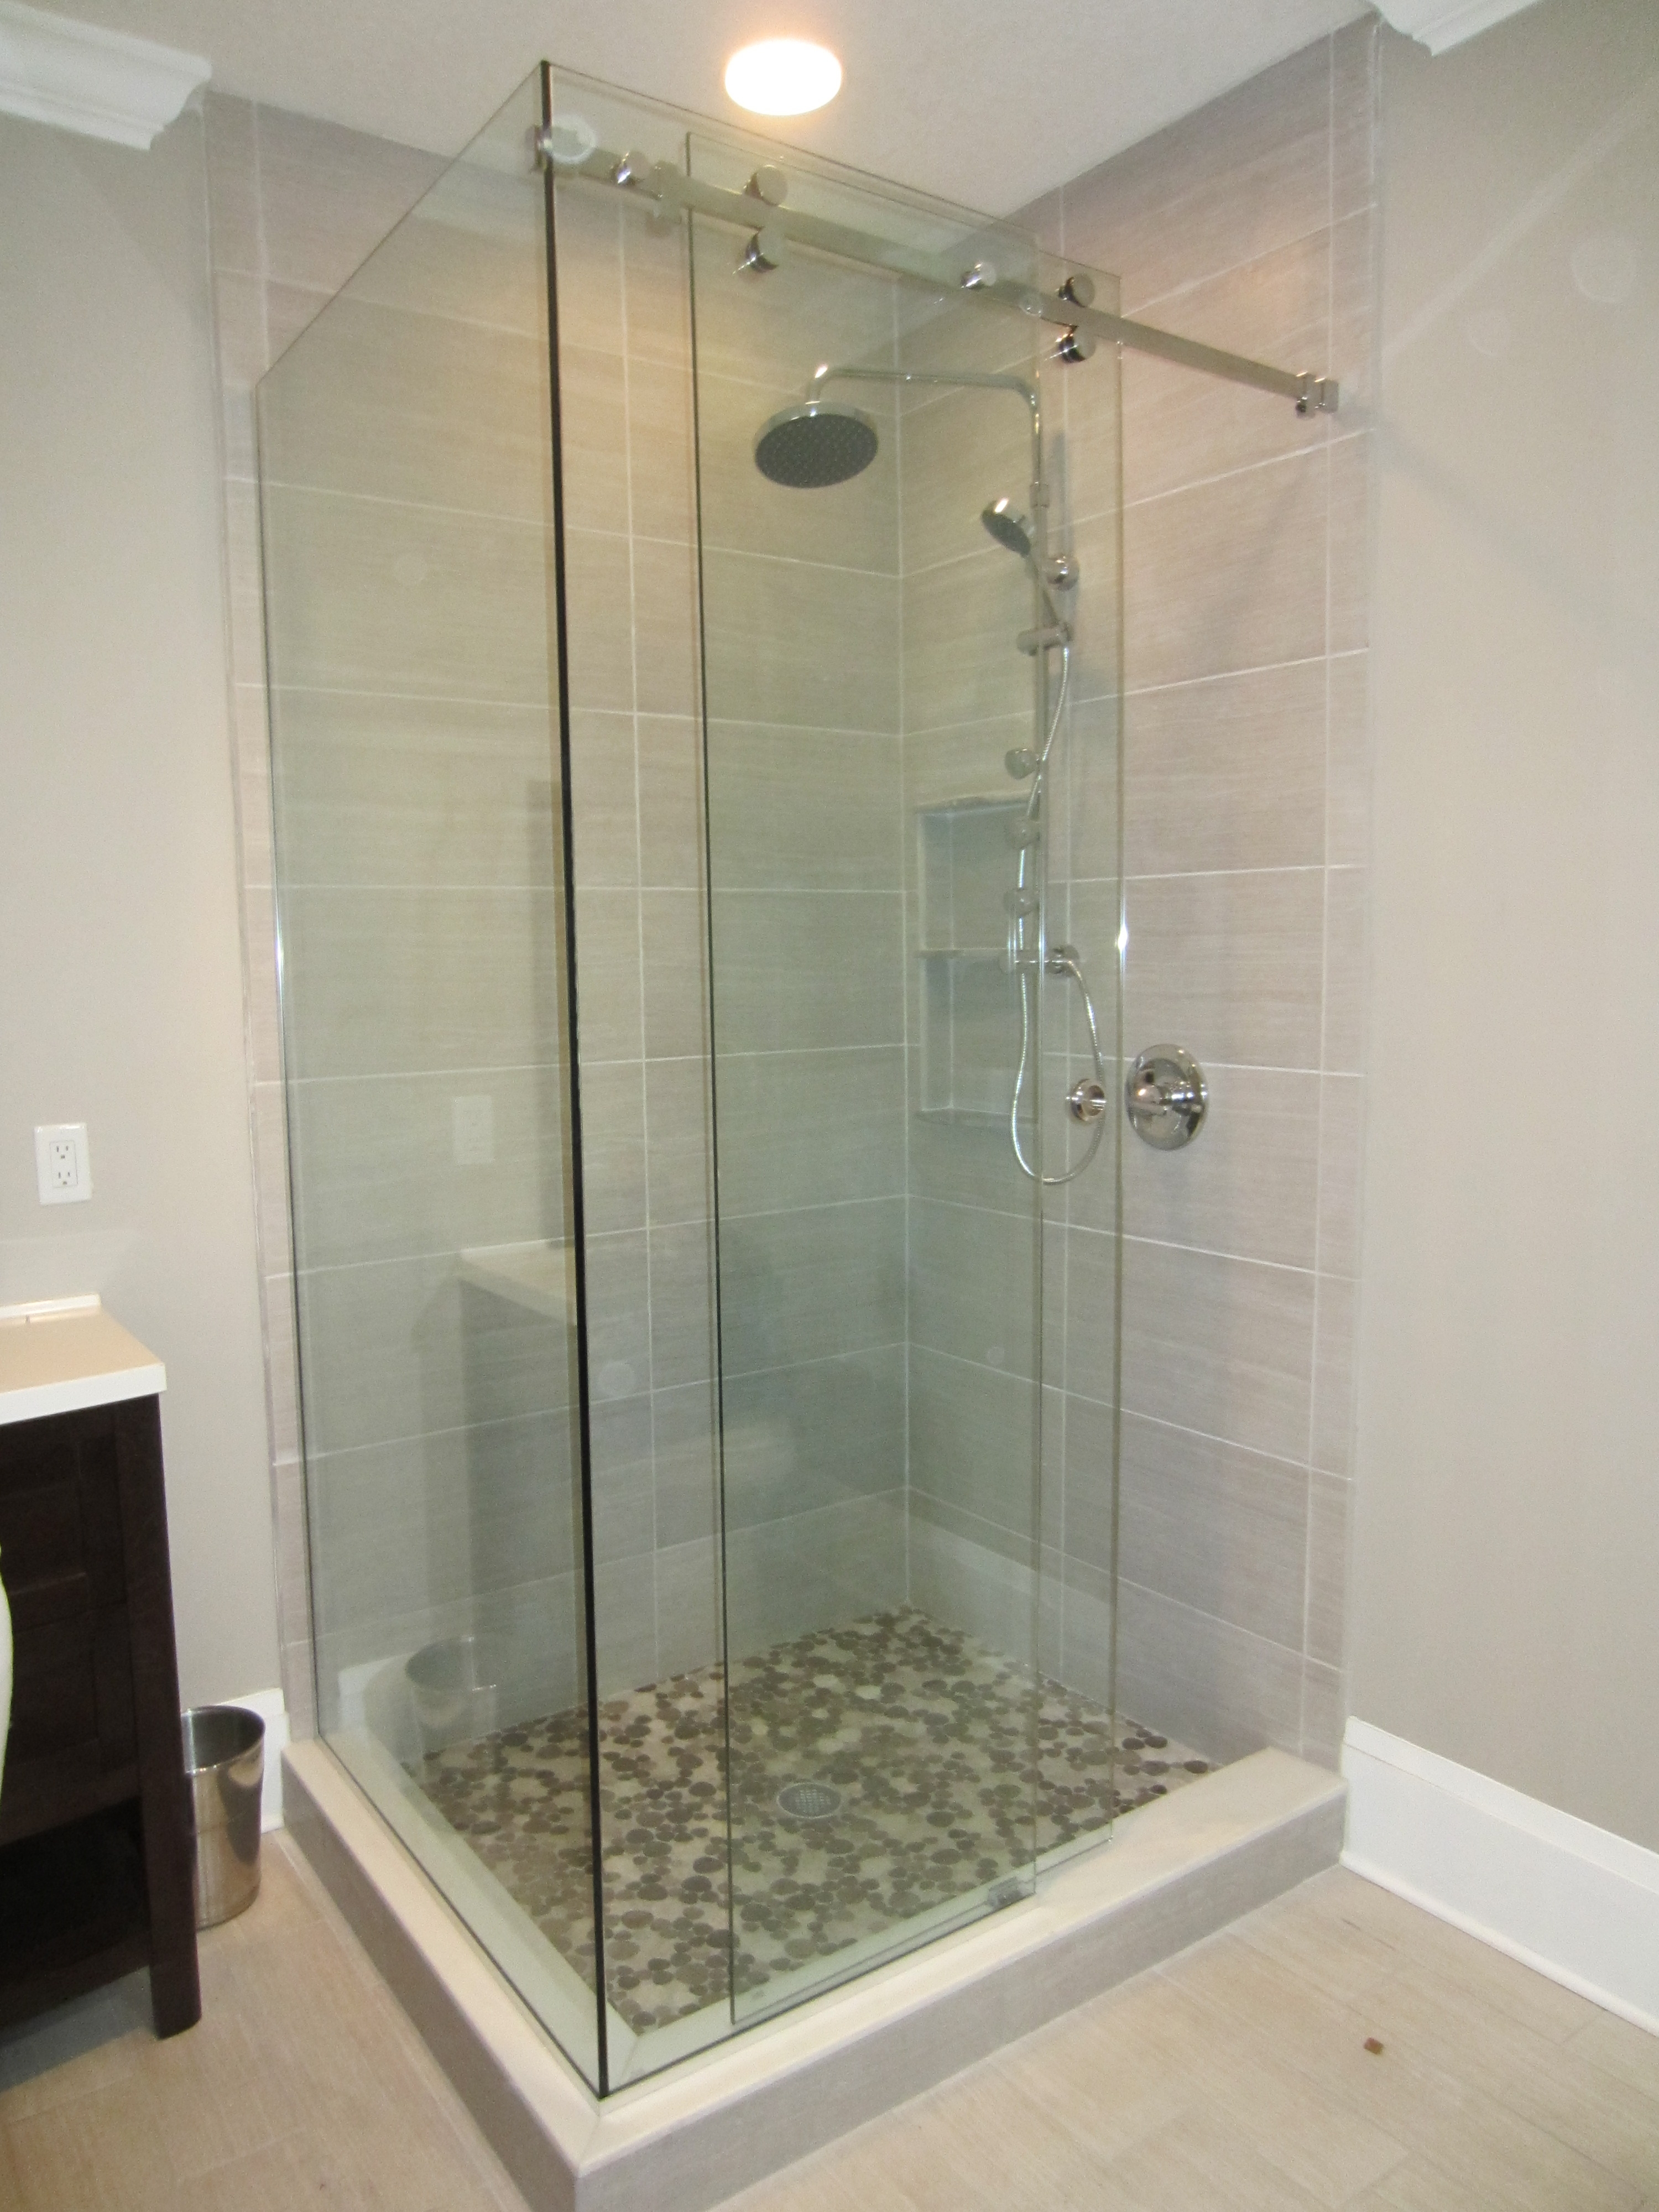 Check Out Our Serenity Sliding Glass Shower Doors Photo Gallery